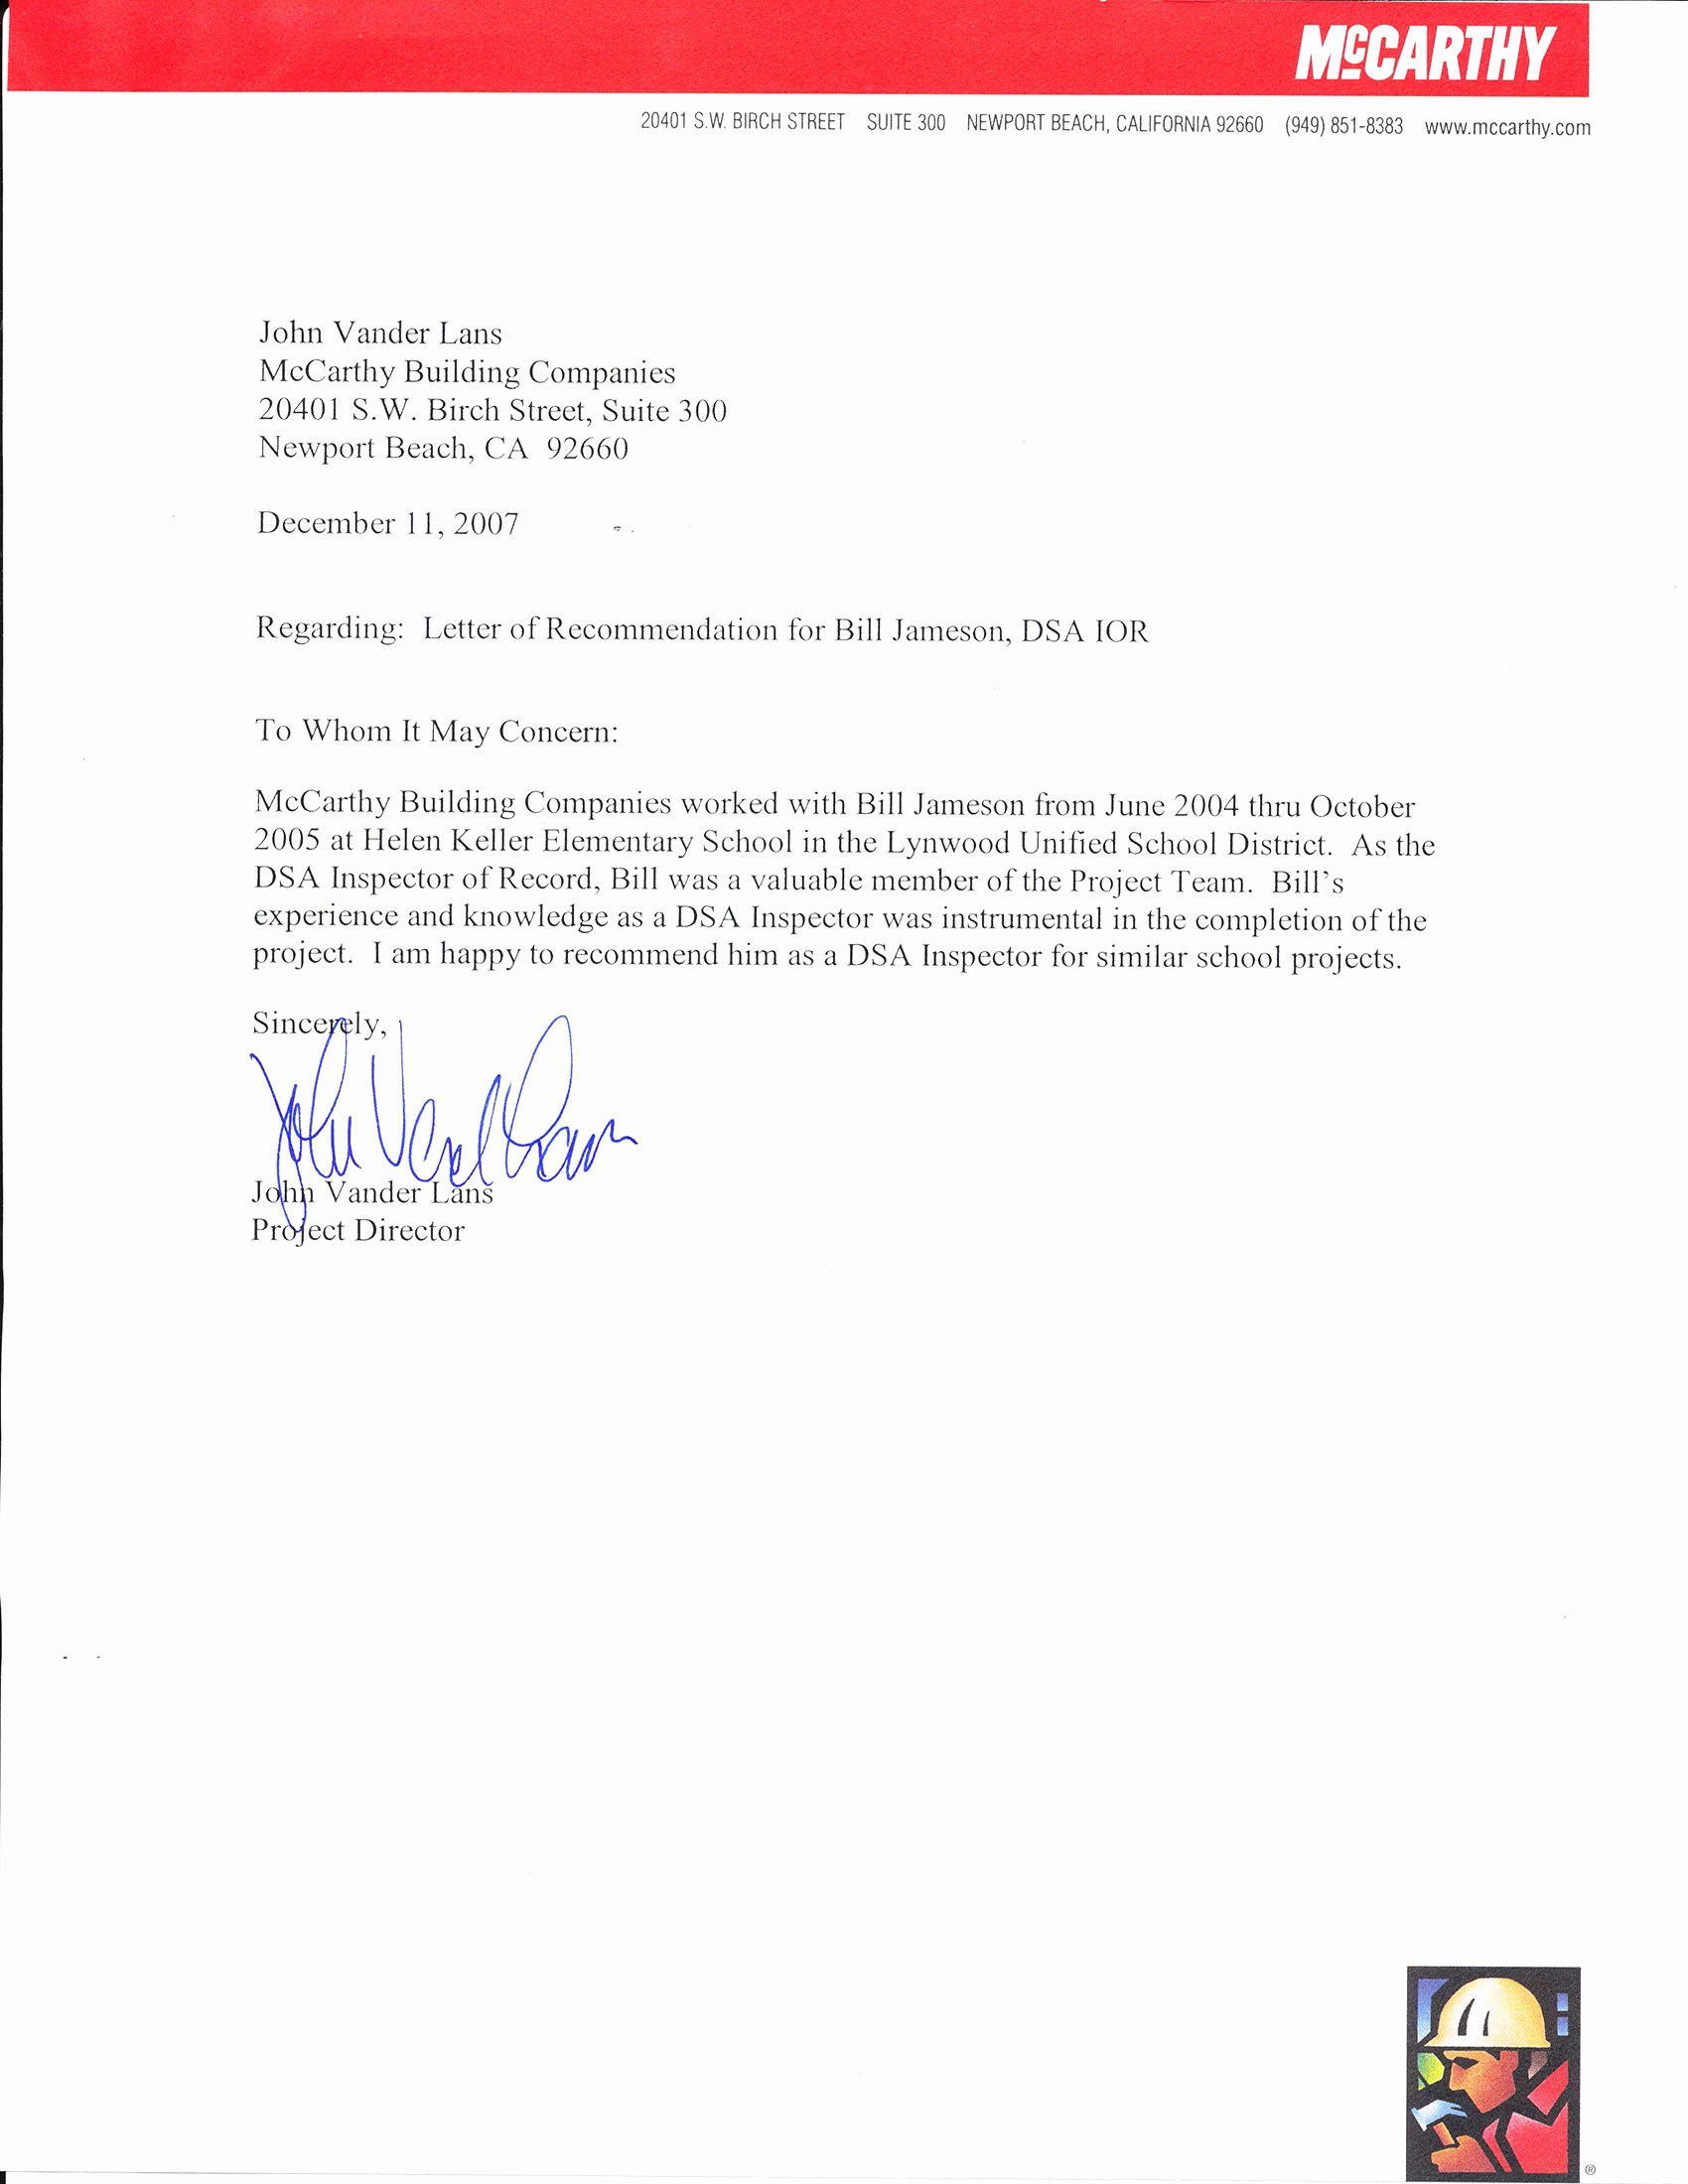 Closing A Letter Of Recommendation Awesome Independent Construction Inspection – Mccarthy Buildings